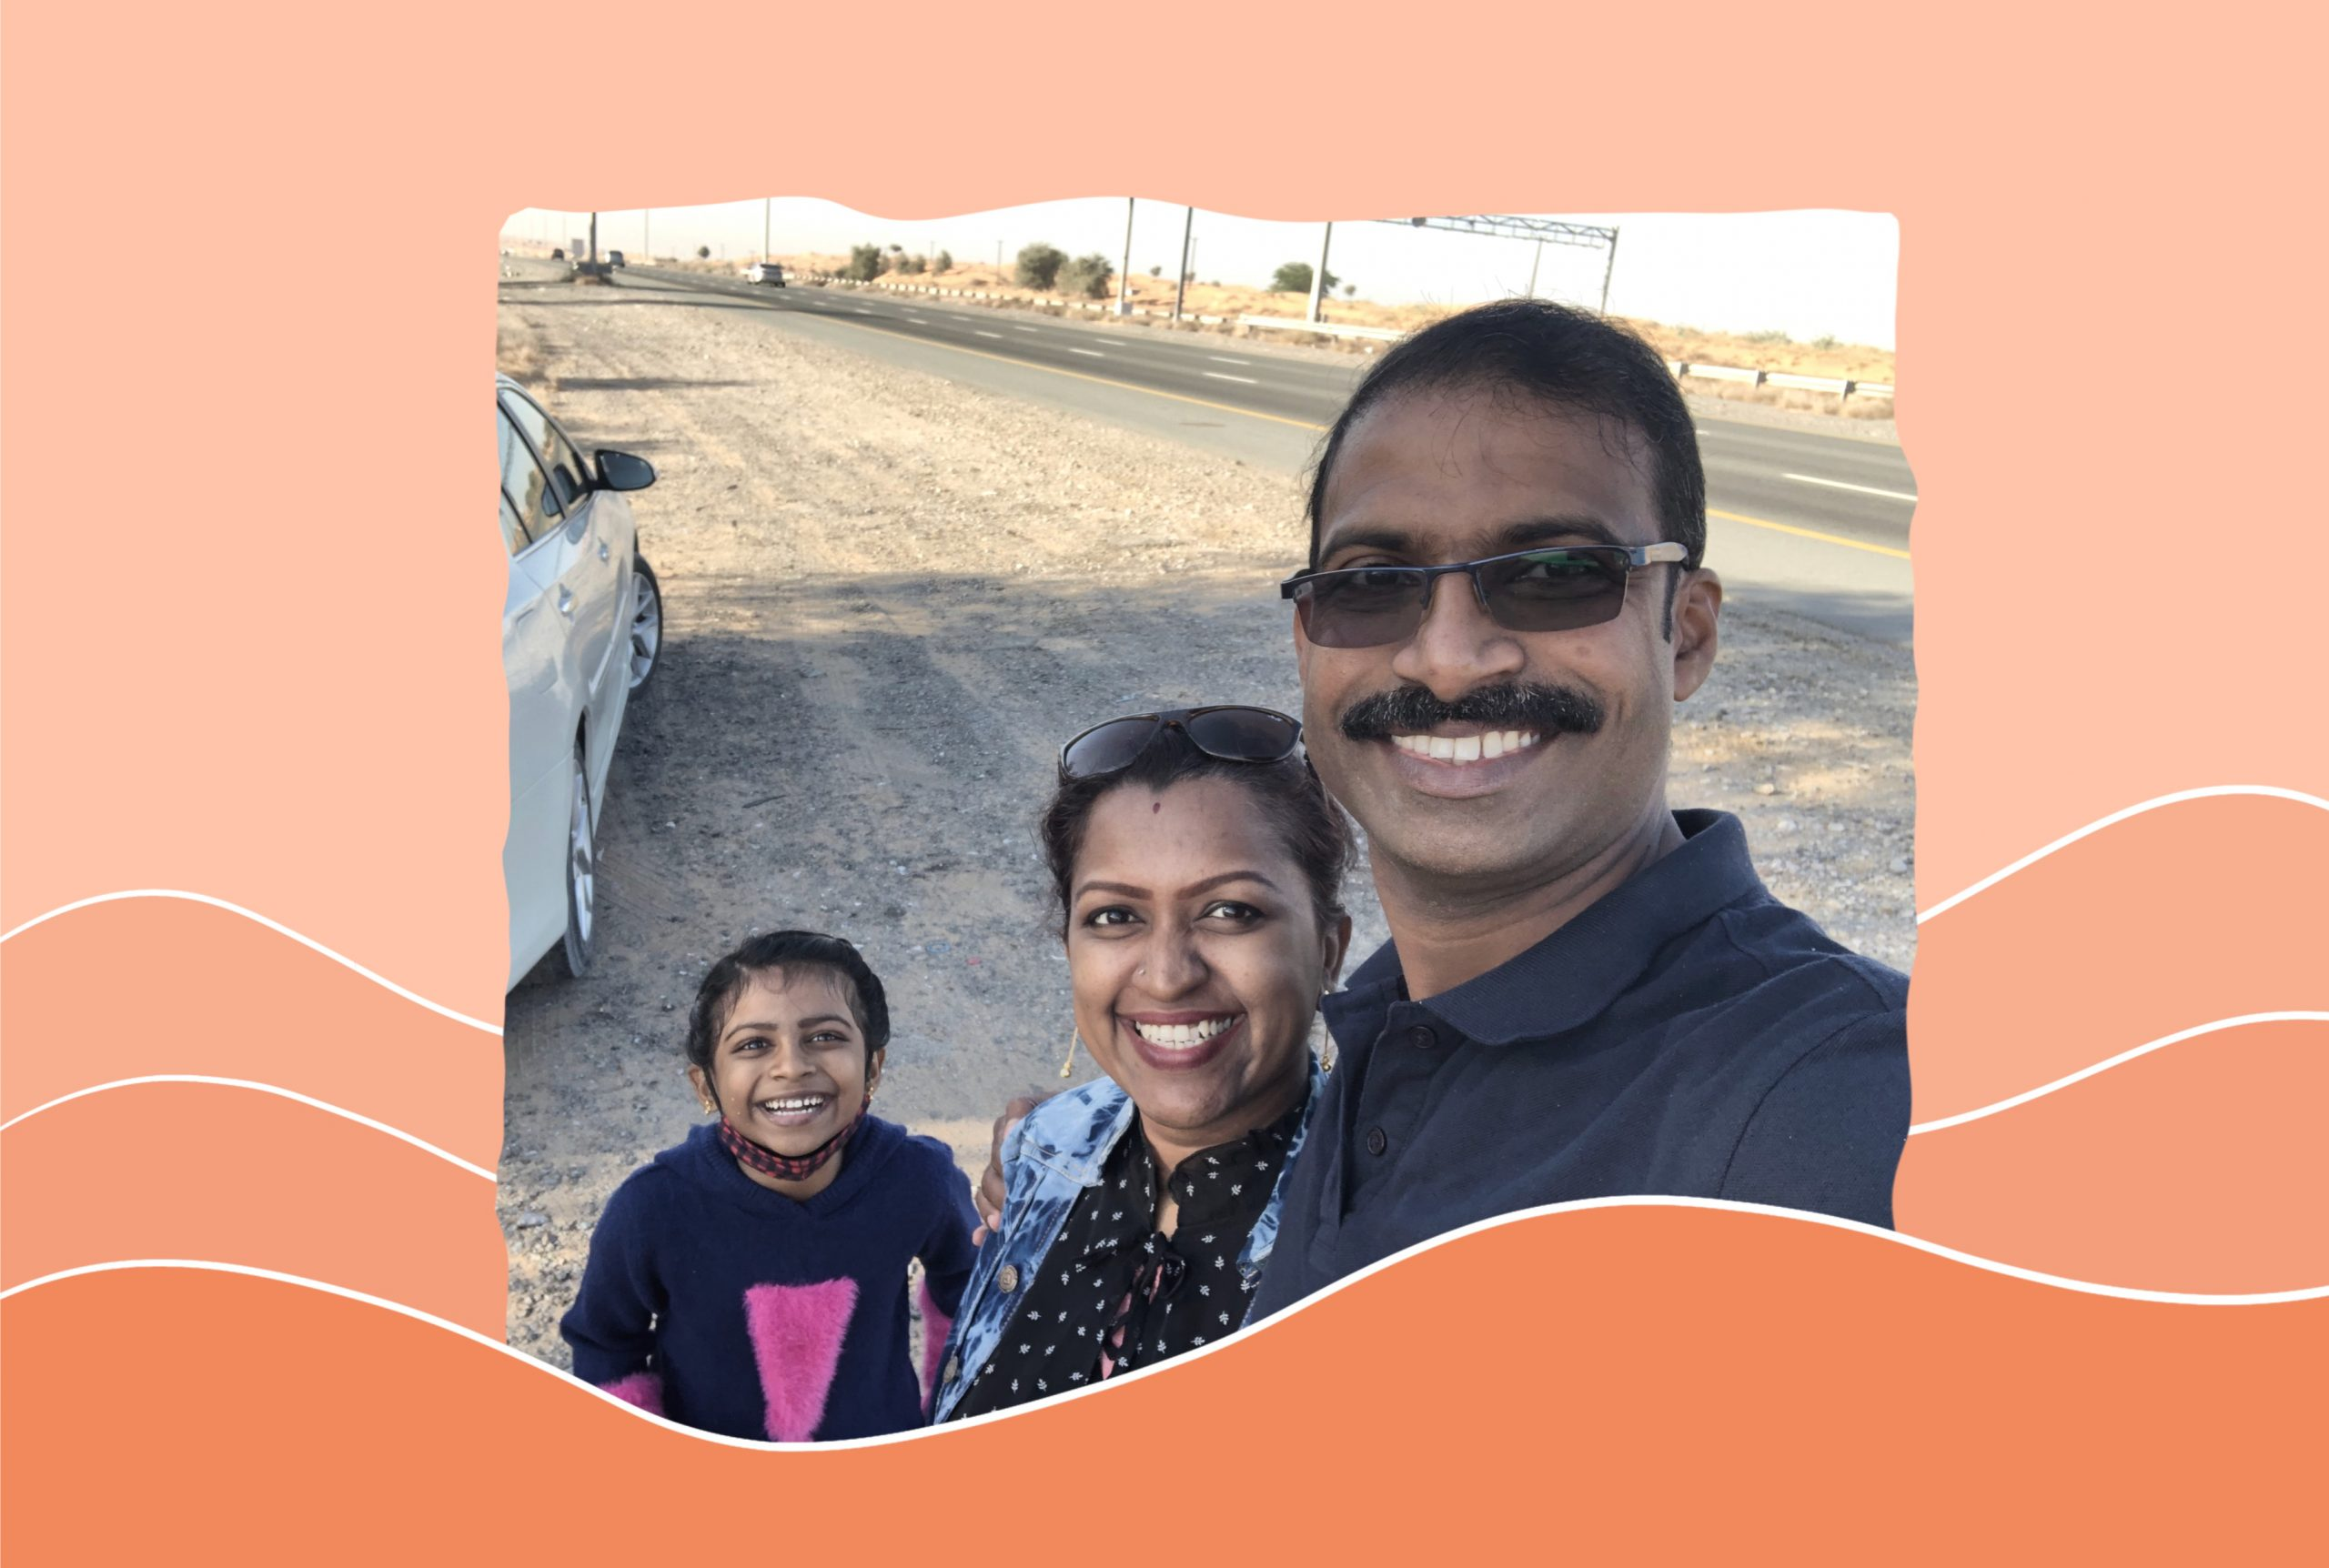 An image of Dhanya Sasidharan with her husband and her daughter.